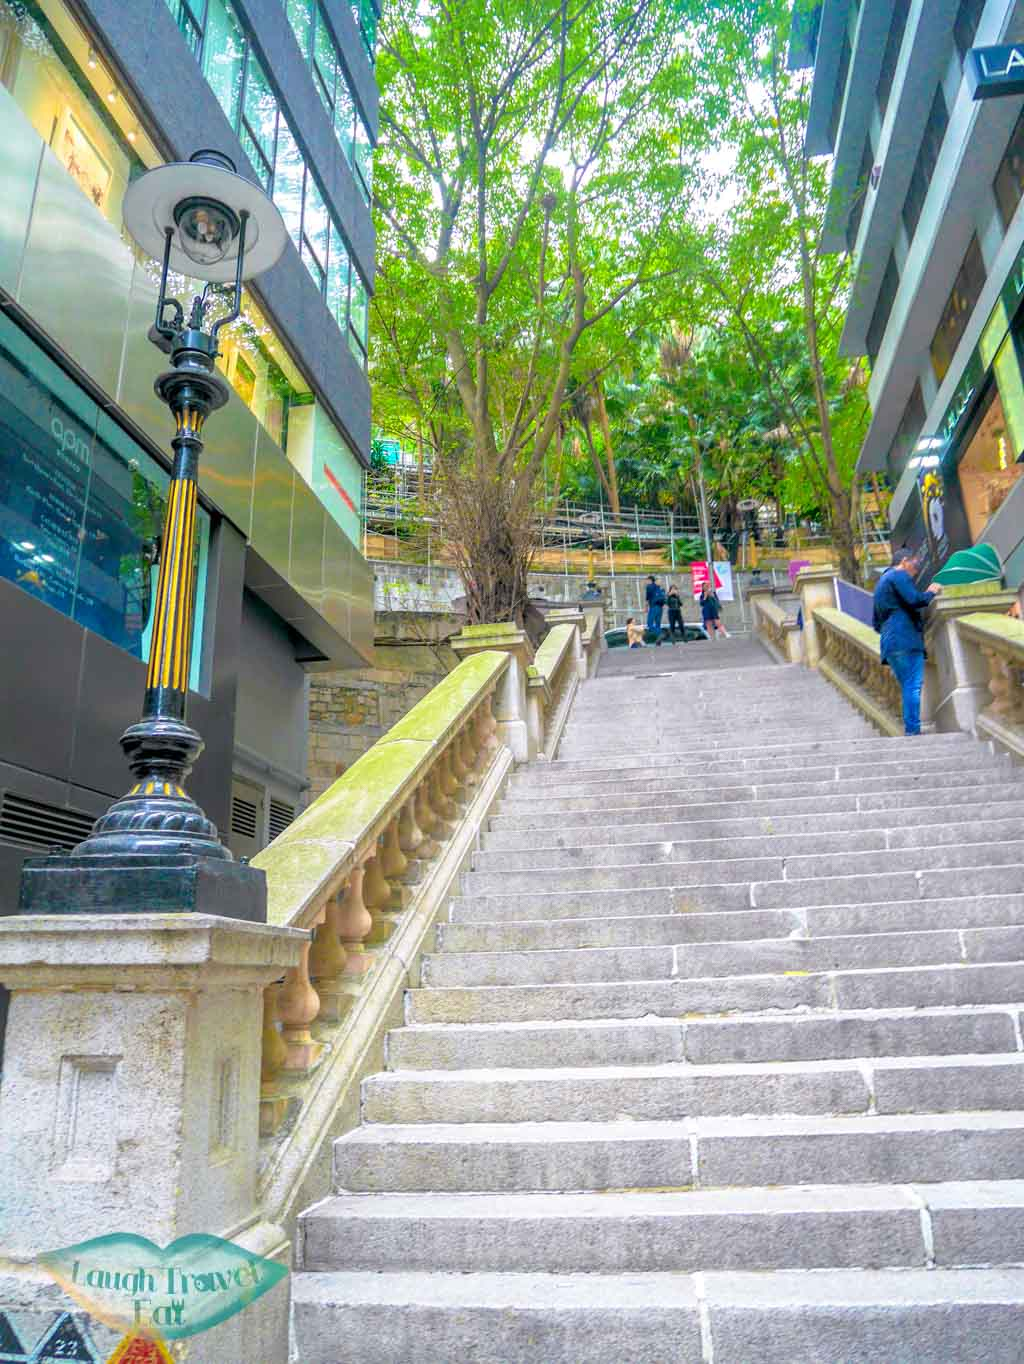 Duddells-staircase-and-gas-lamp-Central-Hong-Kong-Laugh-Travel-Eat